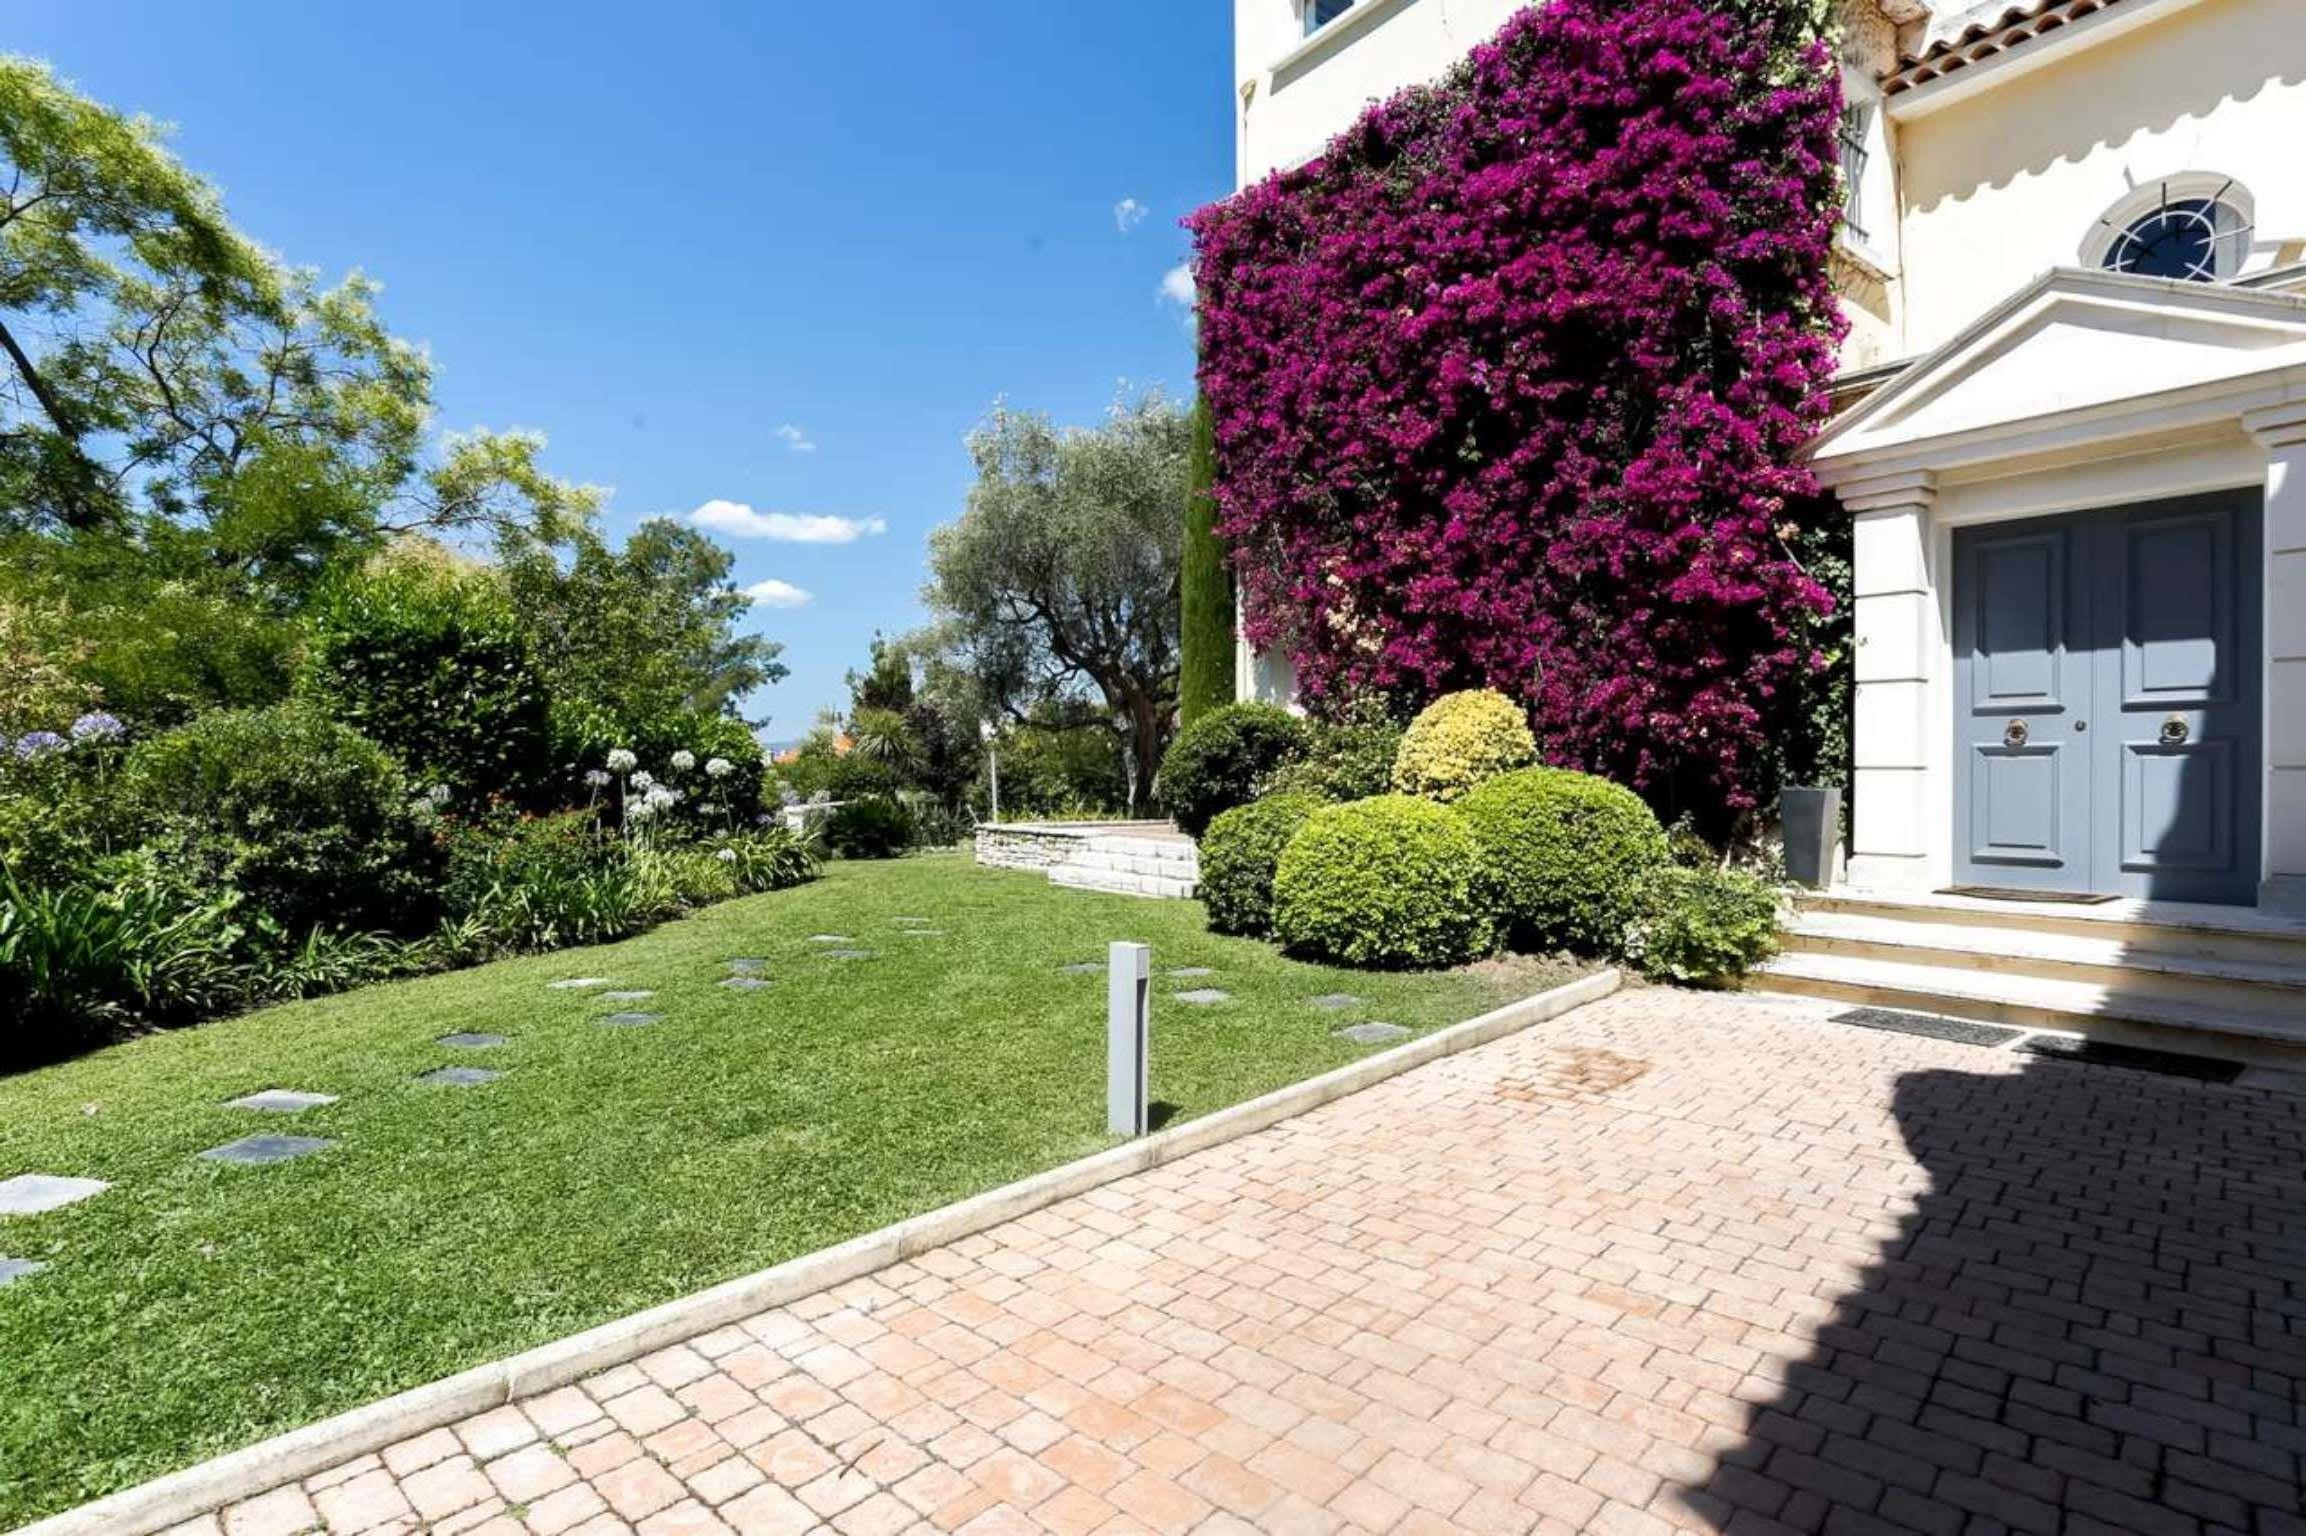 VILLA CALIFORNIE - QUARTIER CALIFORNIE A CANNES AVEC PISCINE photo 20454281